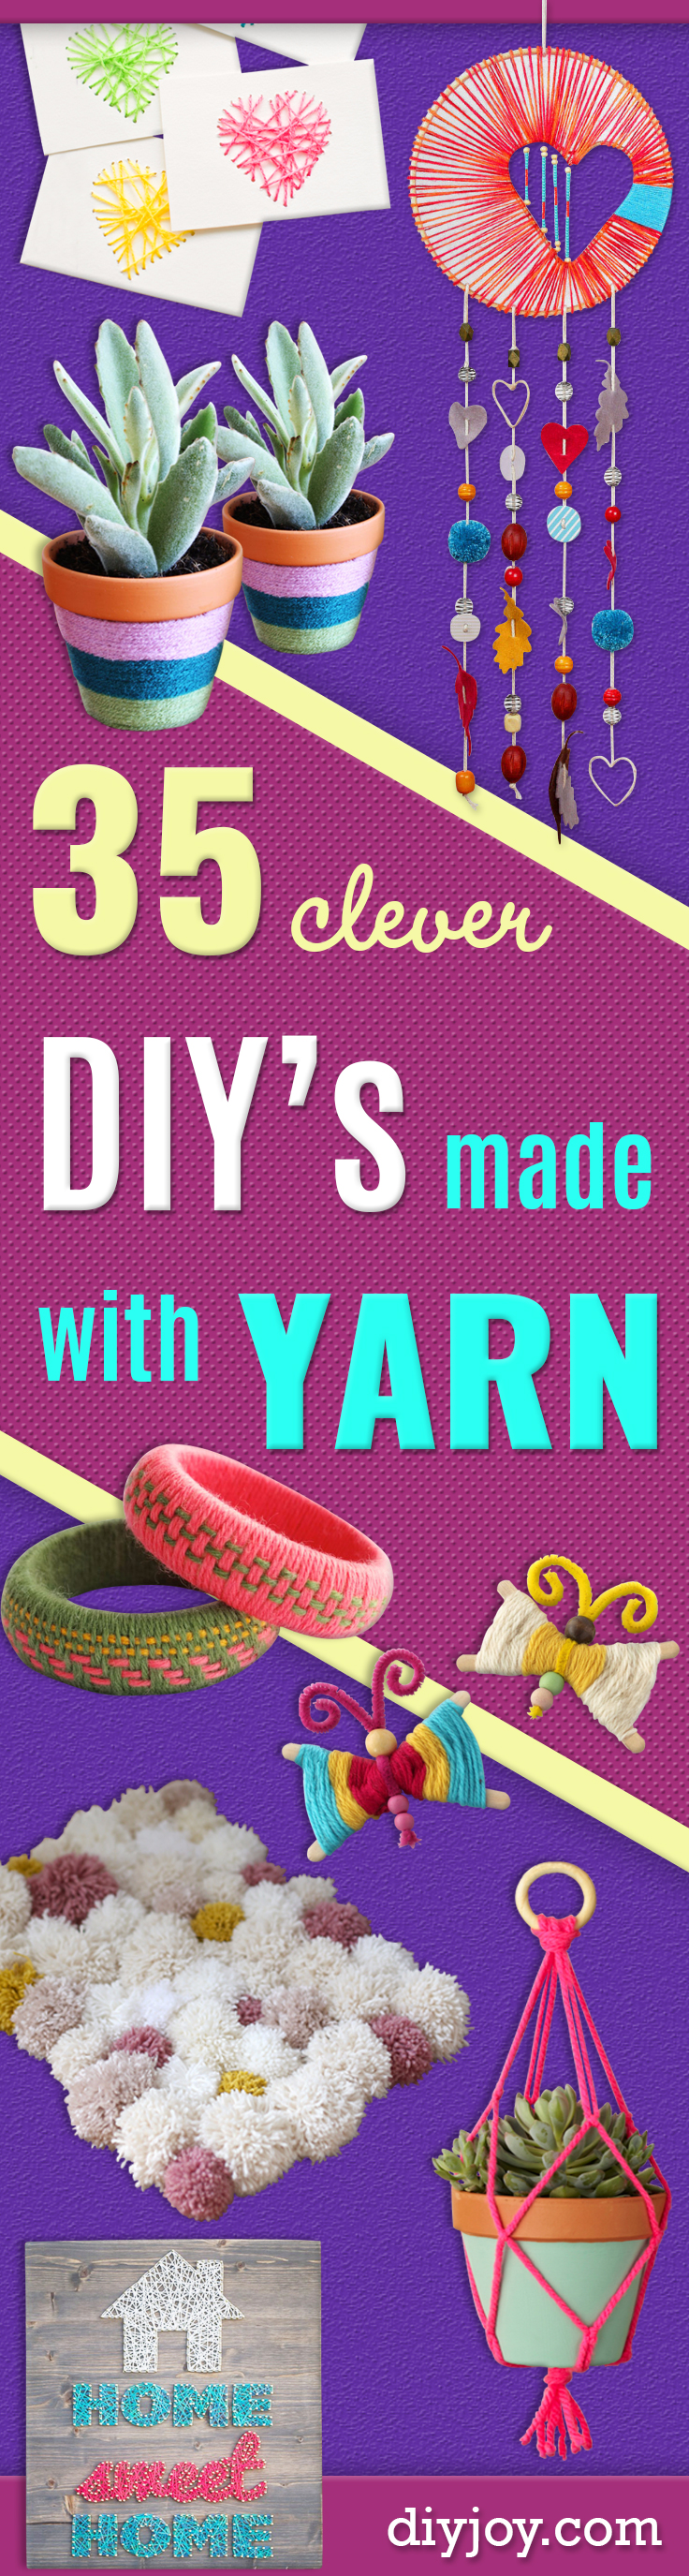 35 clever diys made with yarn for Clever diy projects